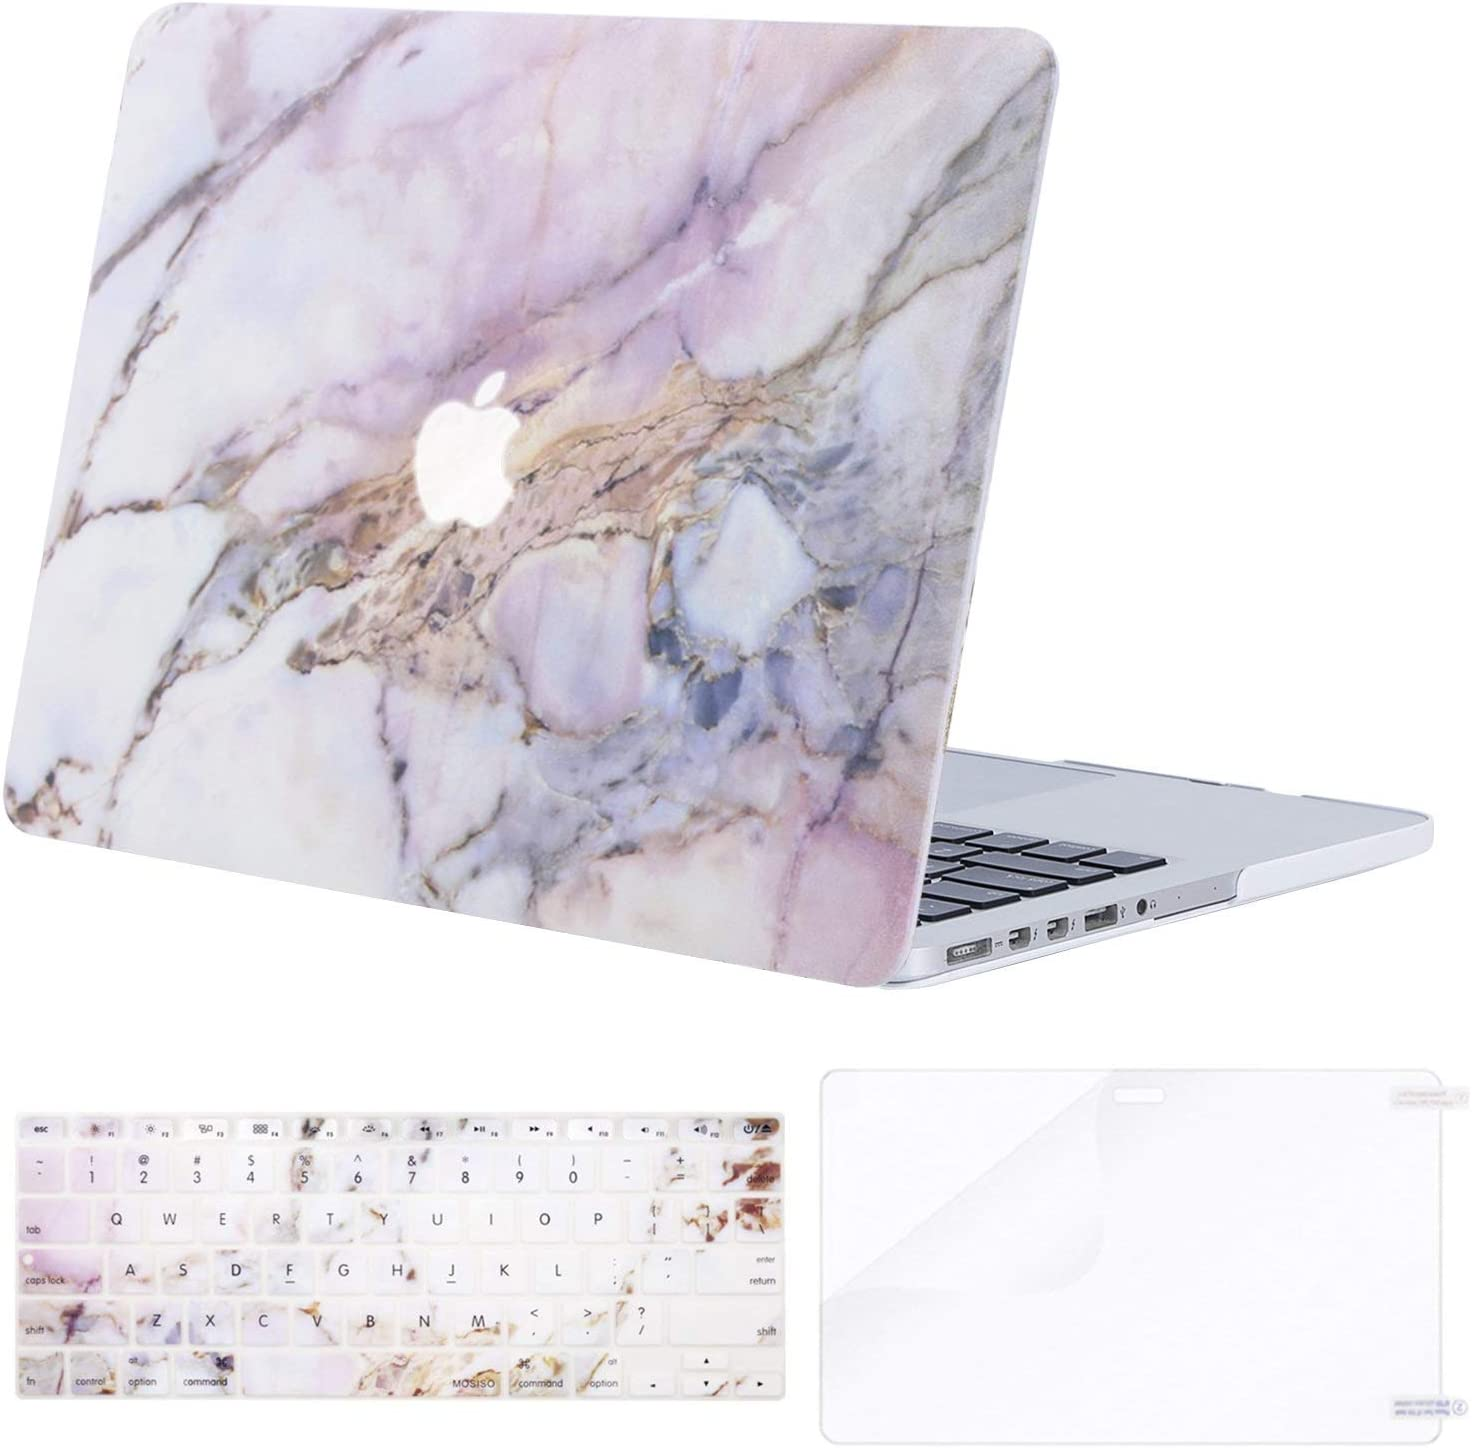 MOSISO MacBook Pro 15 inch Case (model: A1398, 2015 - end 2012 Release), Plastic Hard Shell & Keyboard Cover & Screen Protector Compatible with Older Version MacBook Pro Retina 15 inch,Colorful Marble